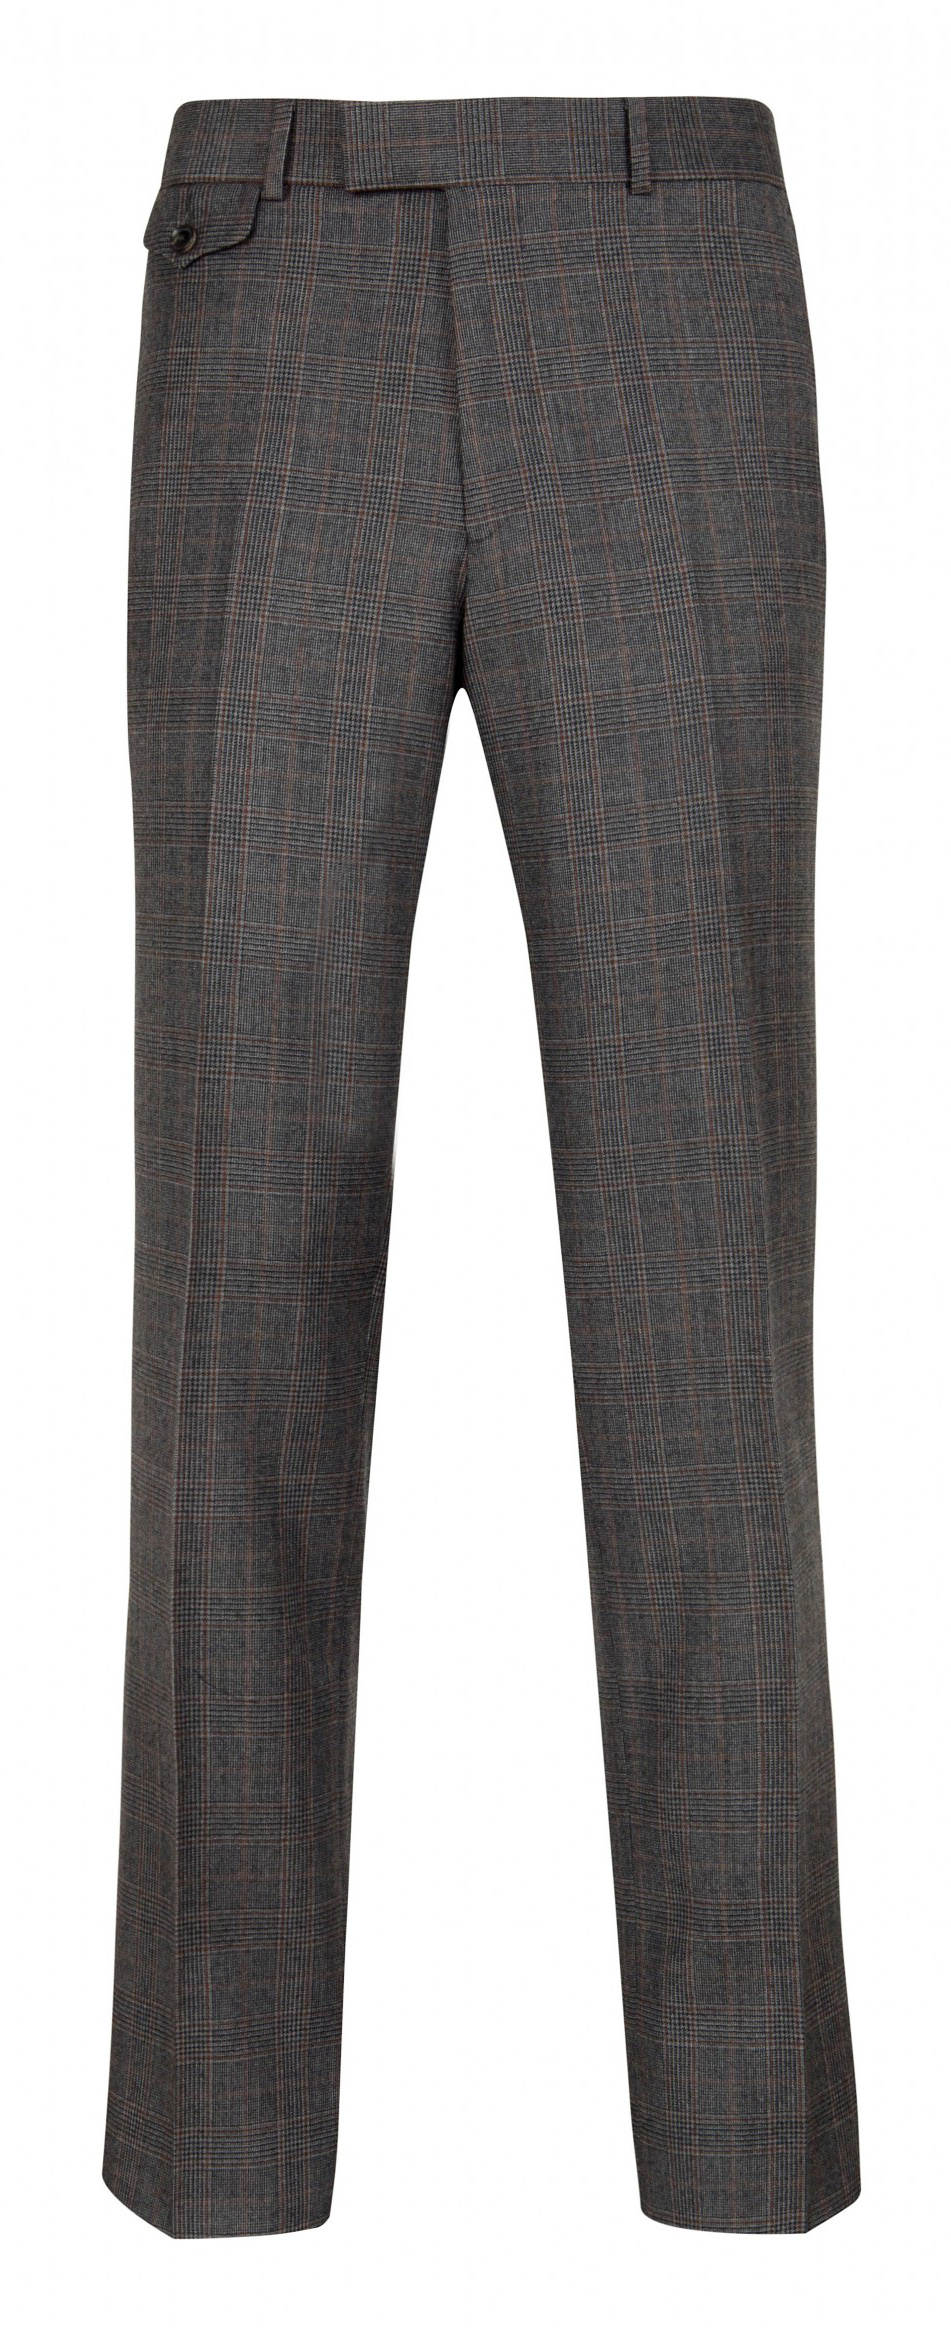 Ted Baker - Wool Suit Trousers